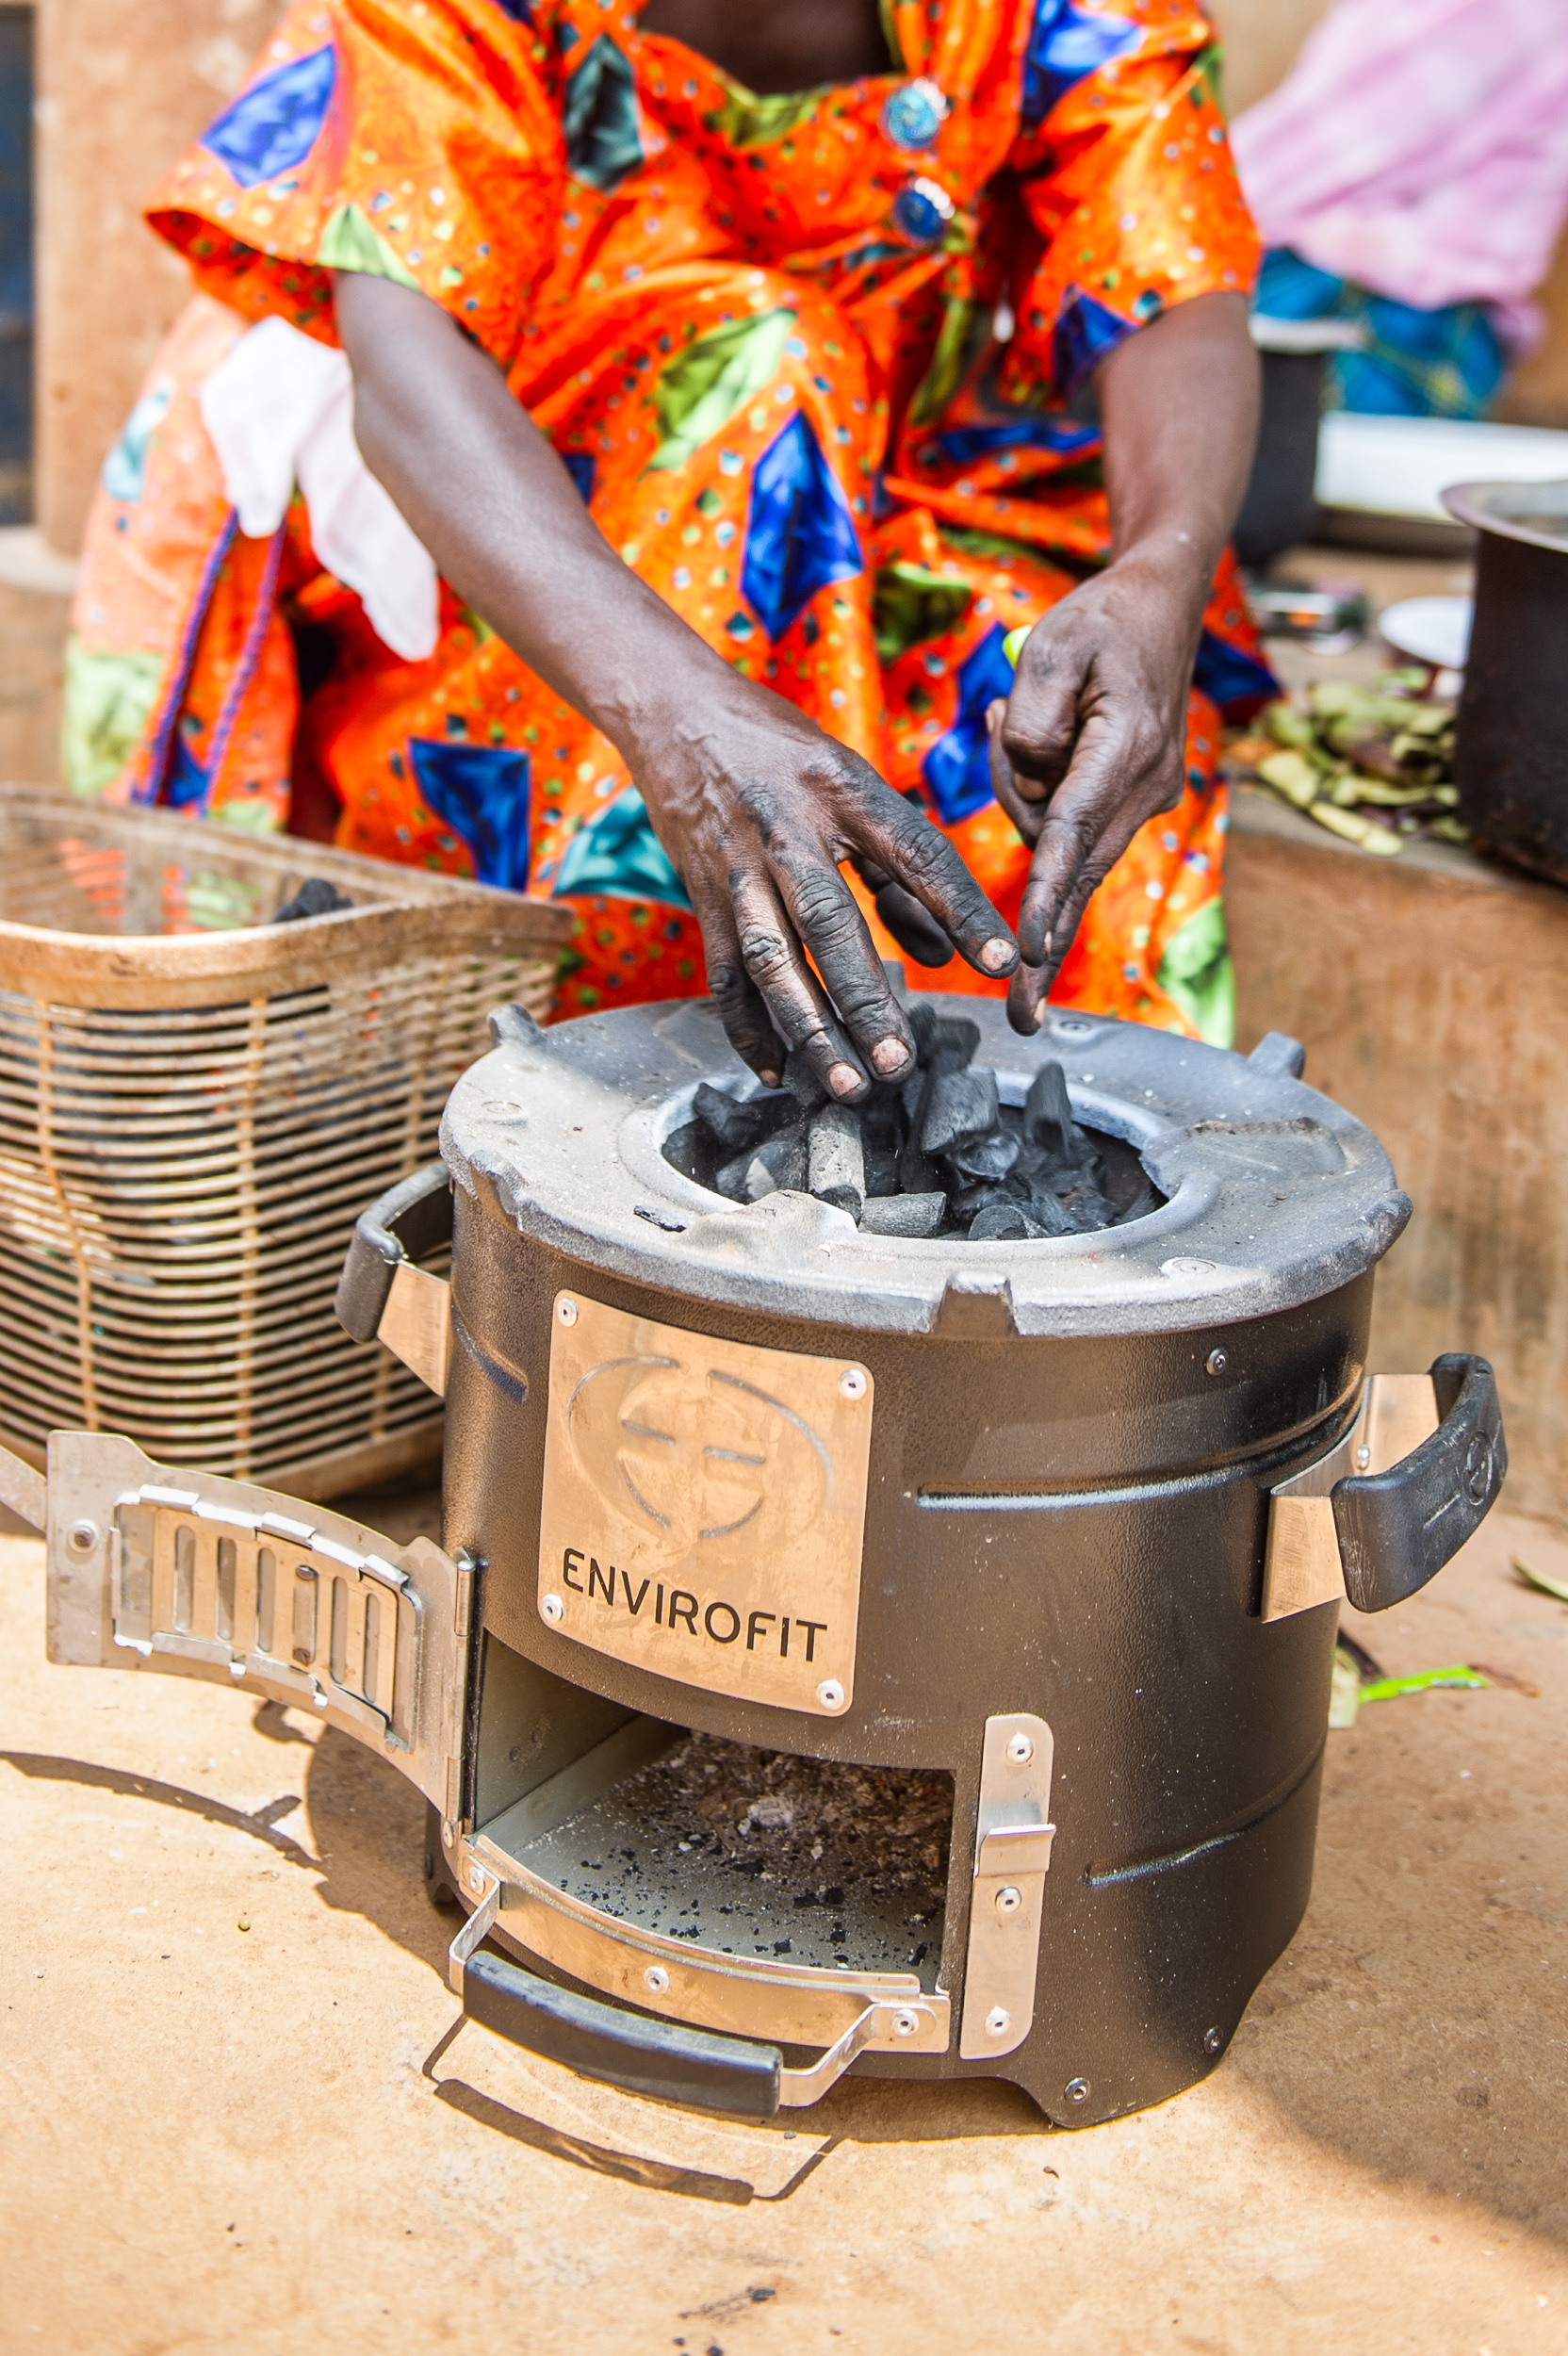 The clean cookstove uses a small amount of charcoal, cutting Jane's need for fuel by 70 percent.